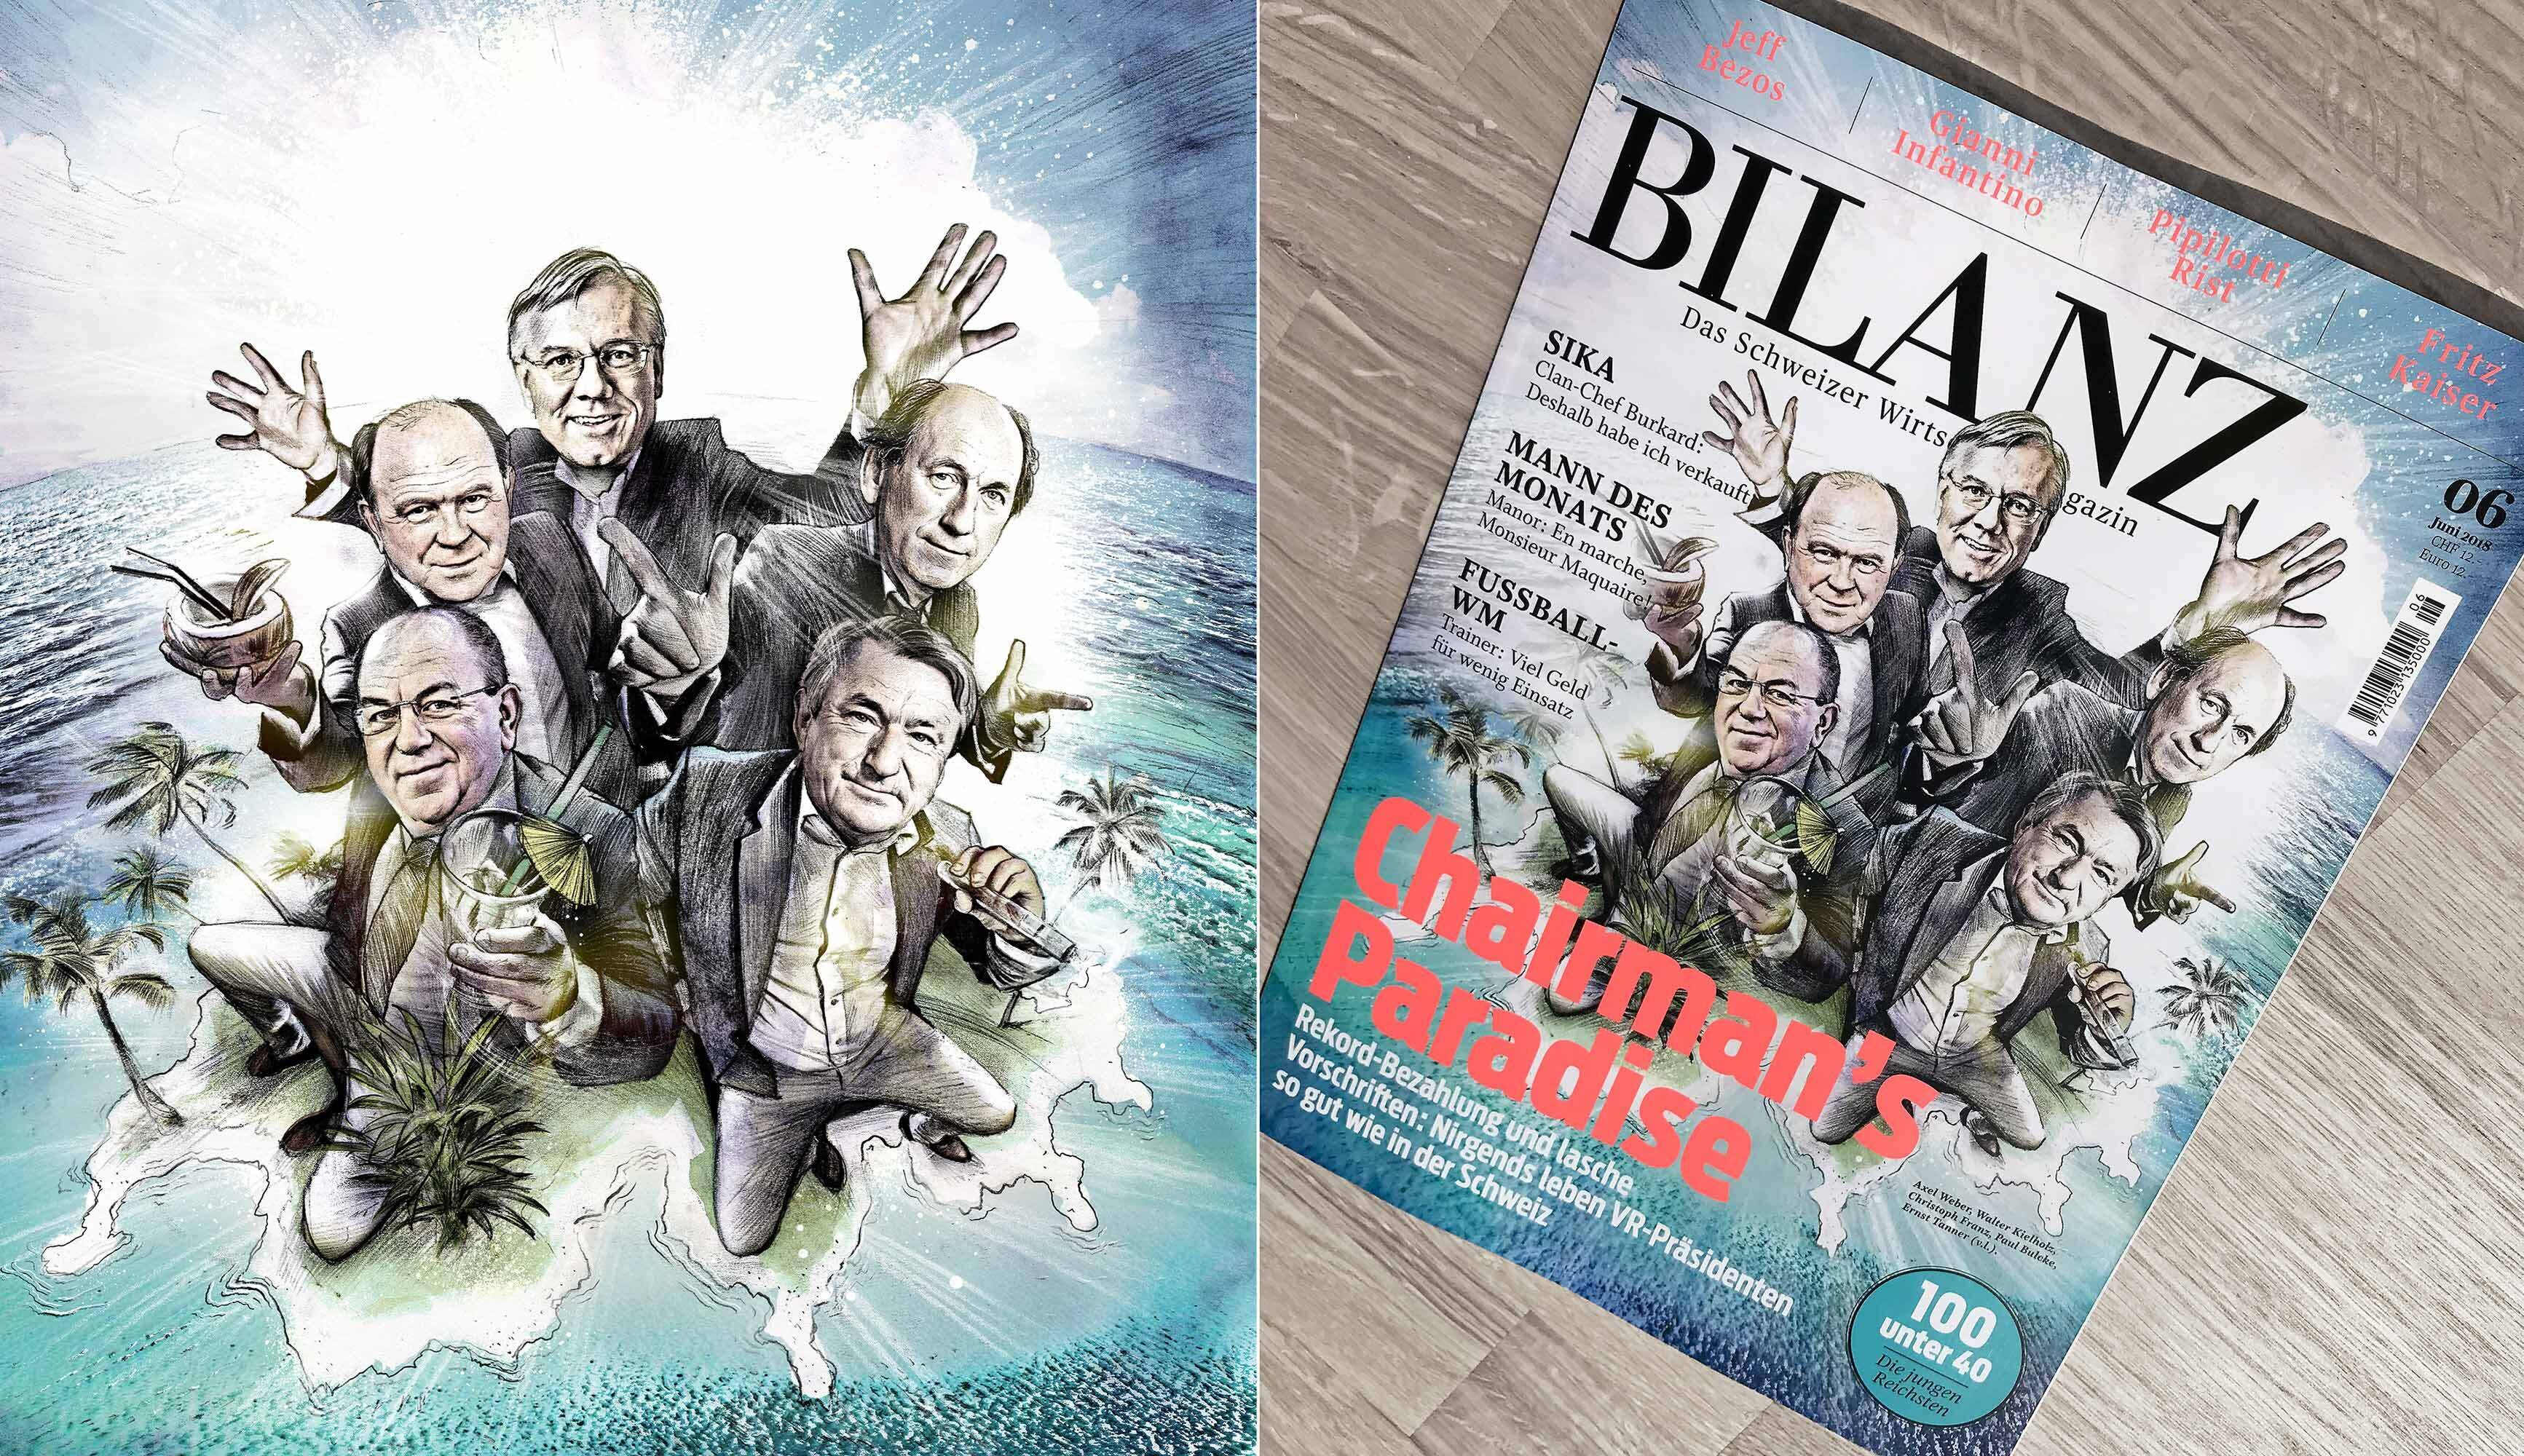 Bilanz cover illustration magazine manager caricature - Kornel Illustration | Kornel Stadler portfolio